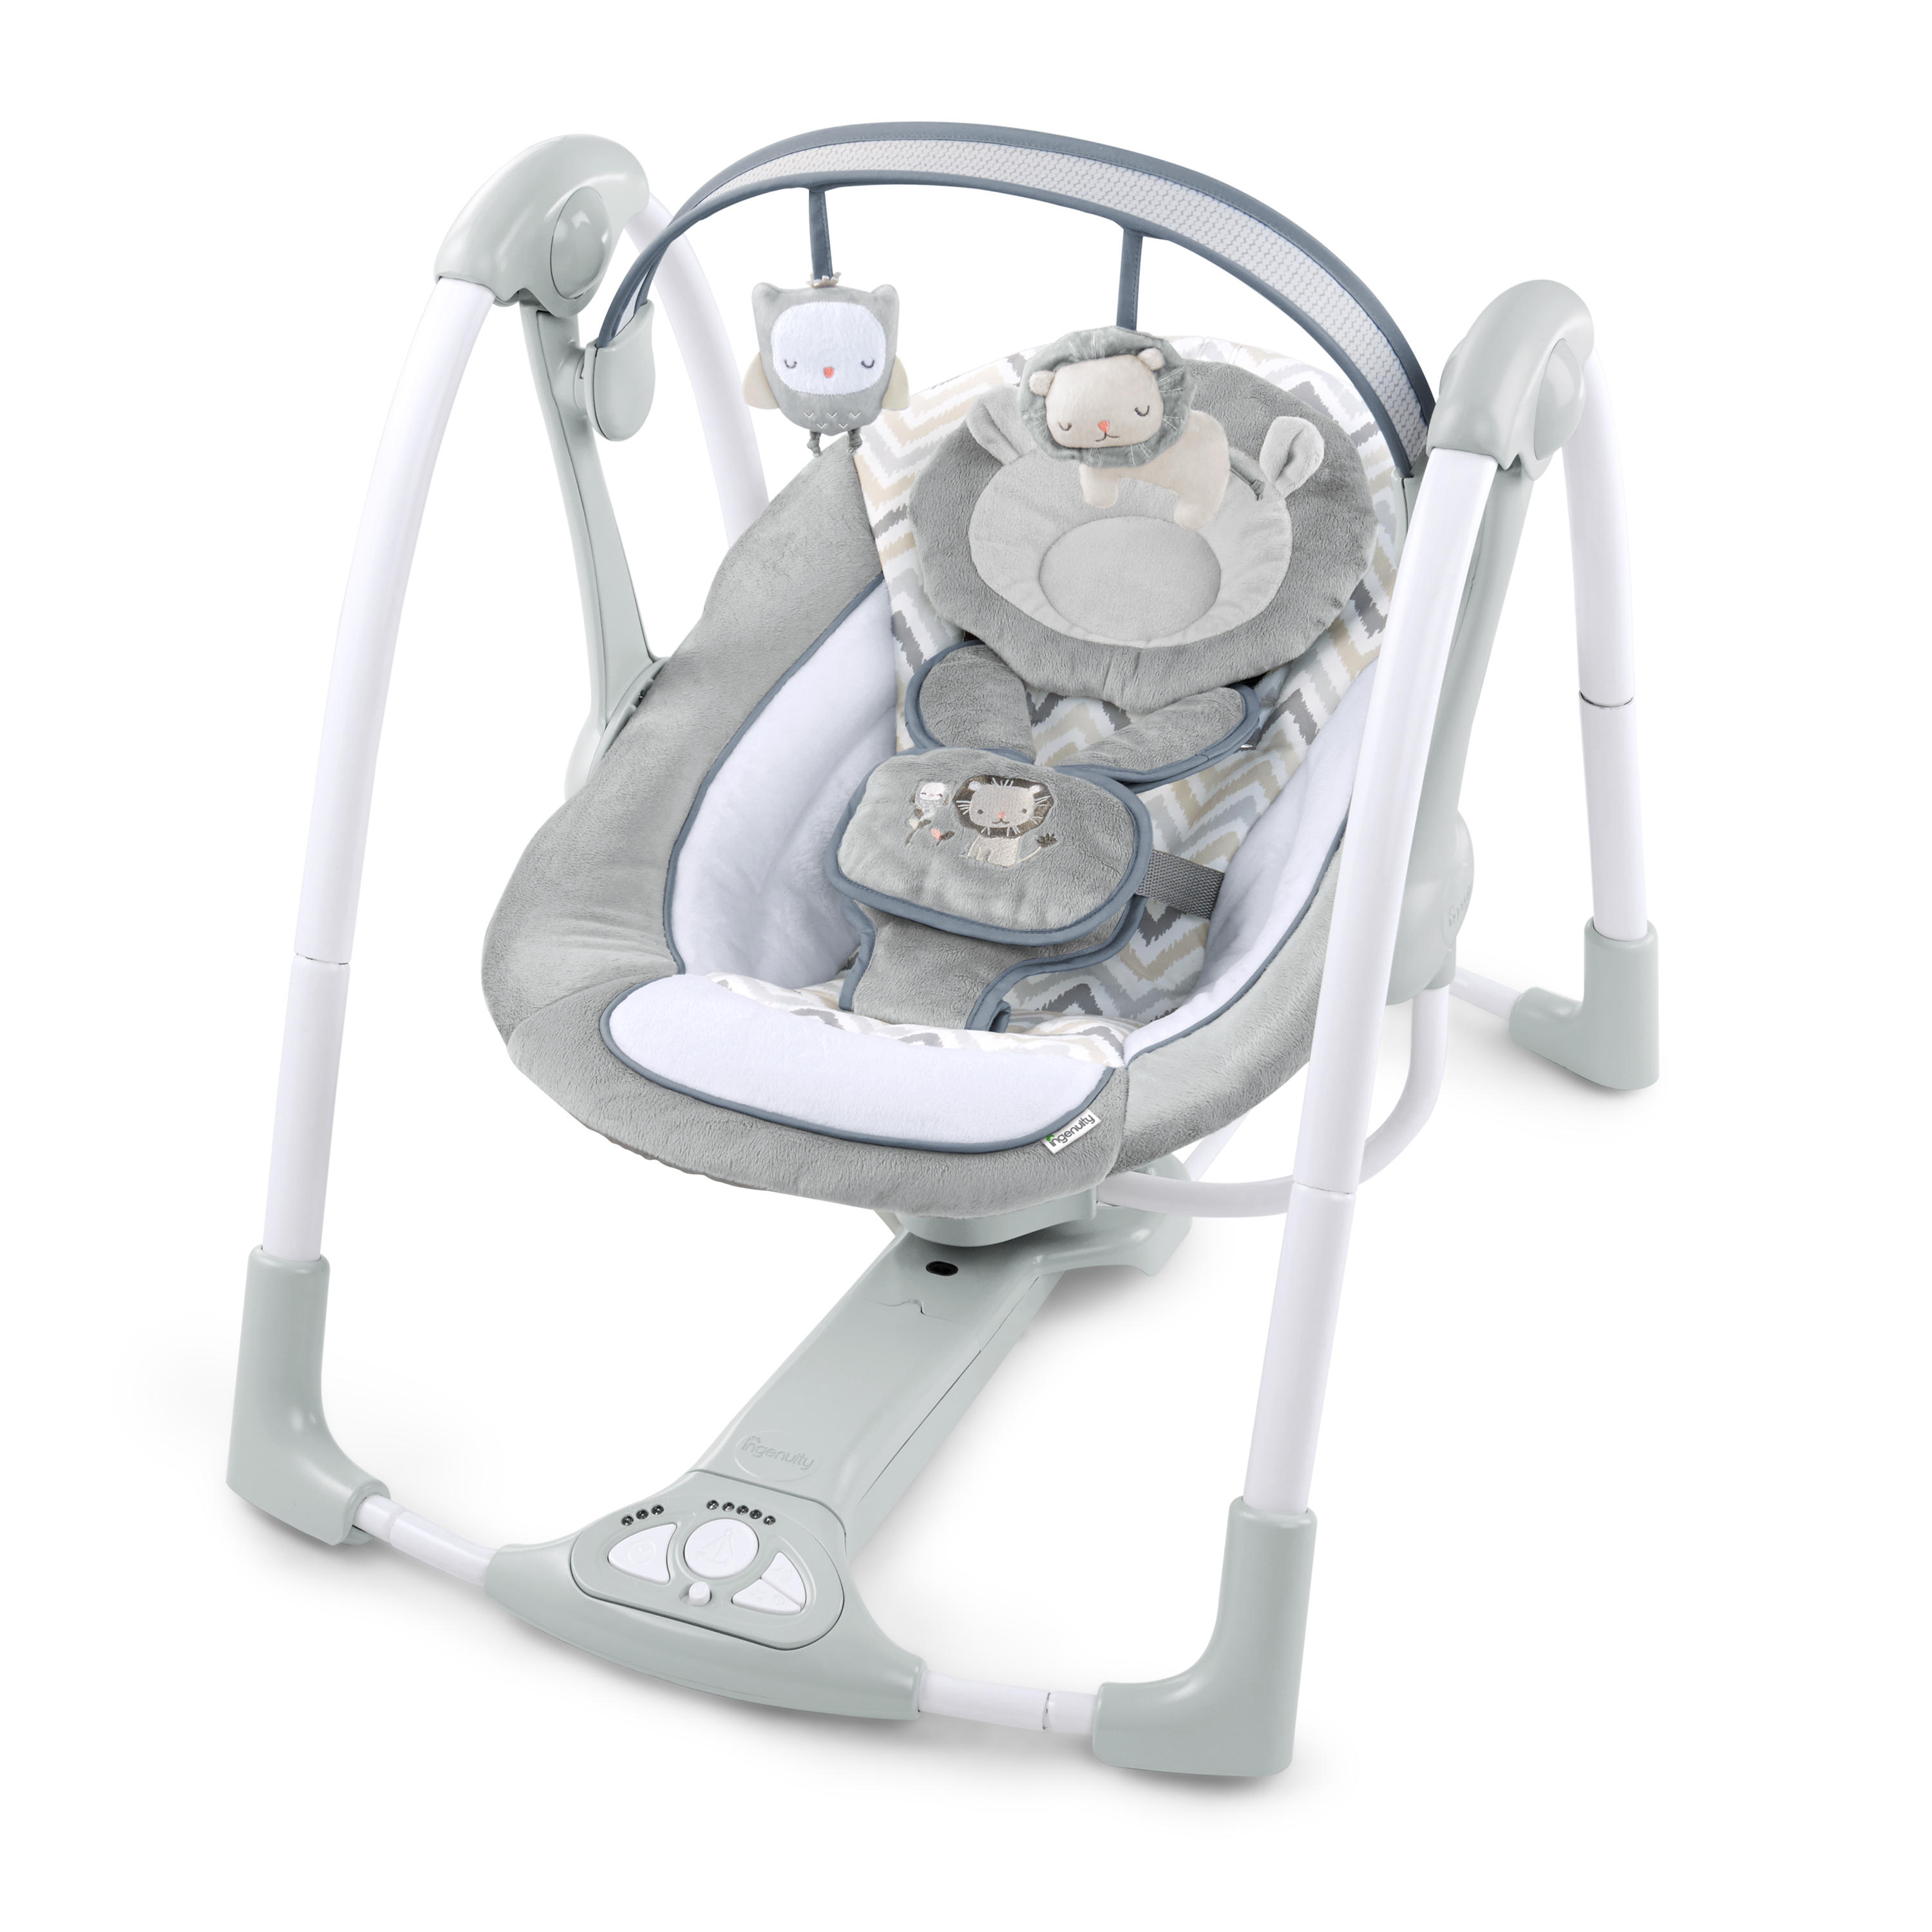 Baby Portable Swing with Power Adaptor in Braden by Ingenuity